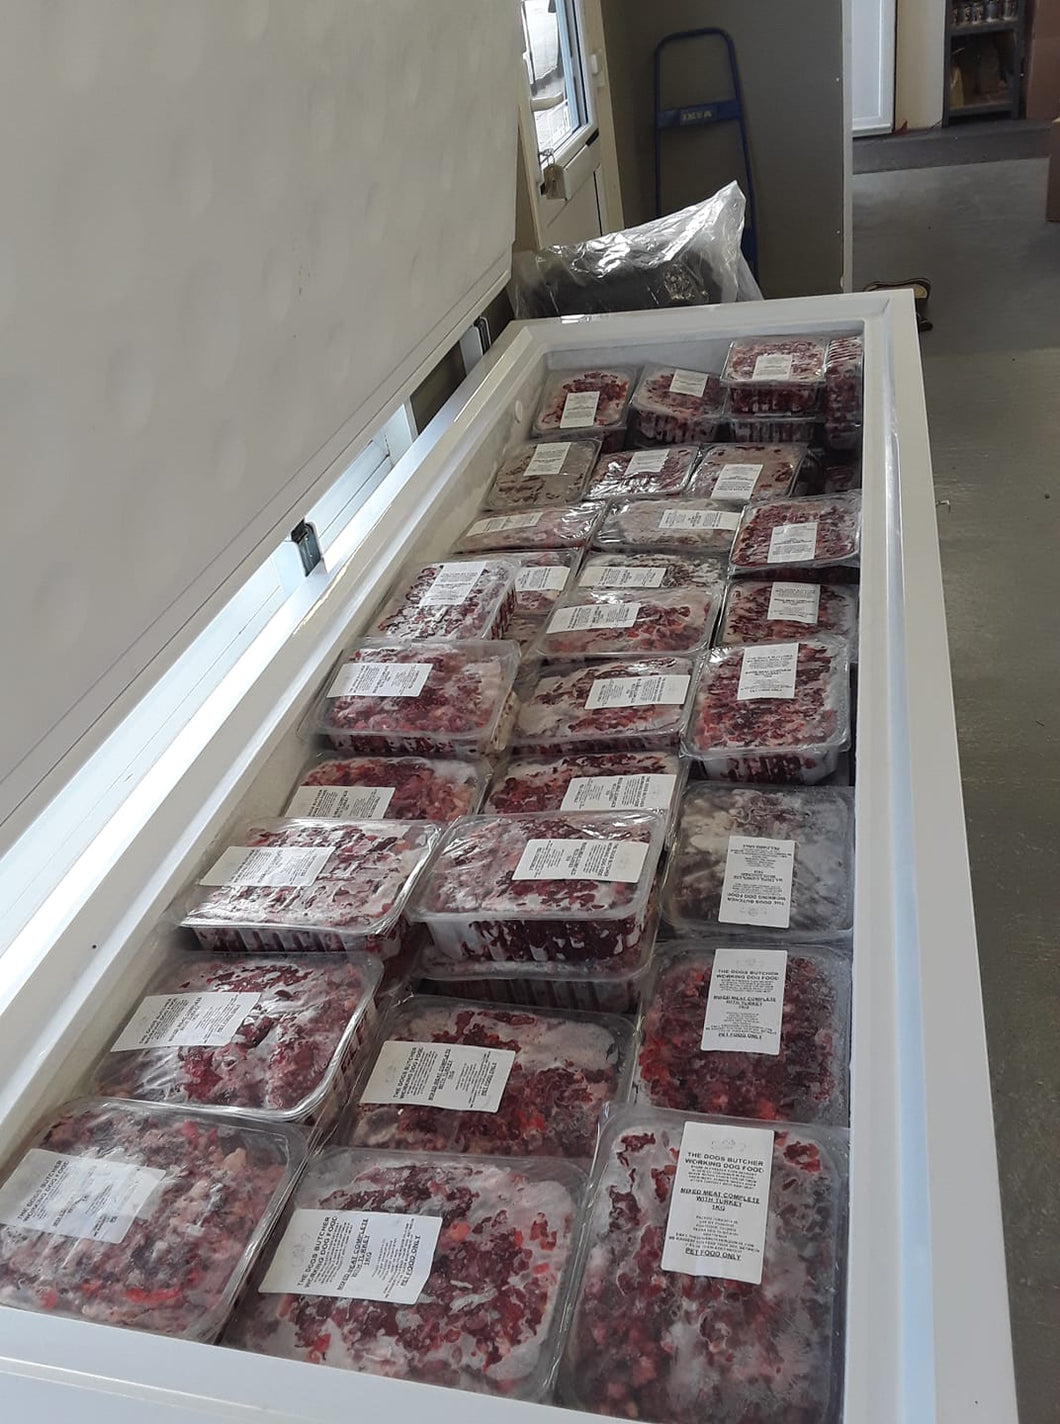 The Dog's Butcher. Boar mince 1kg